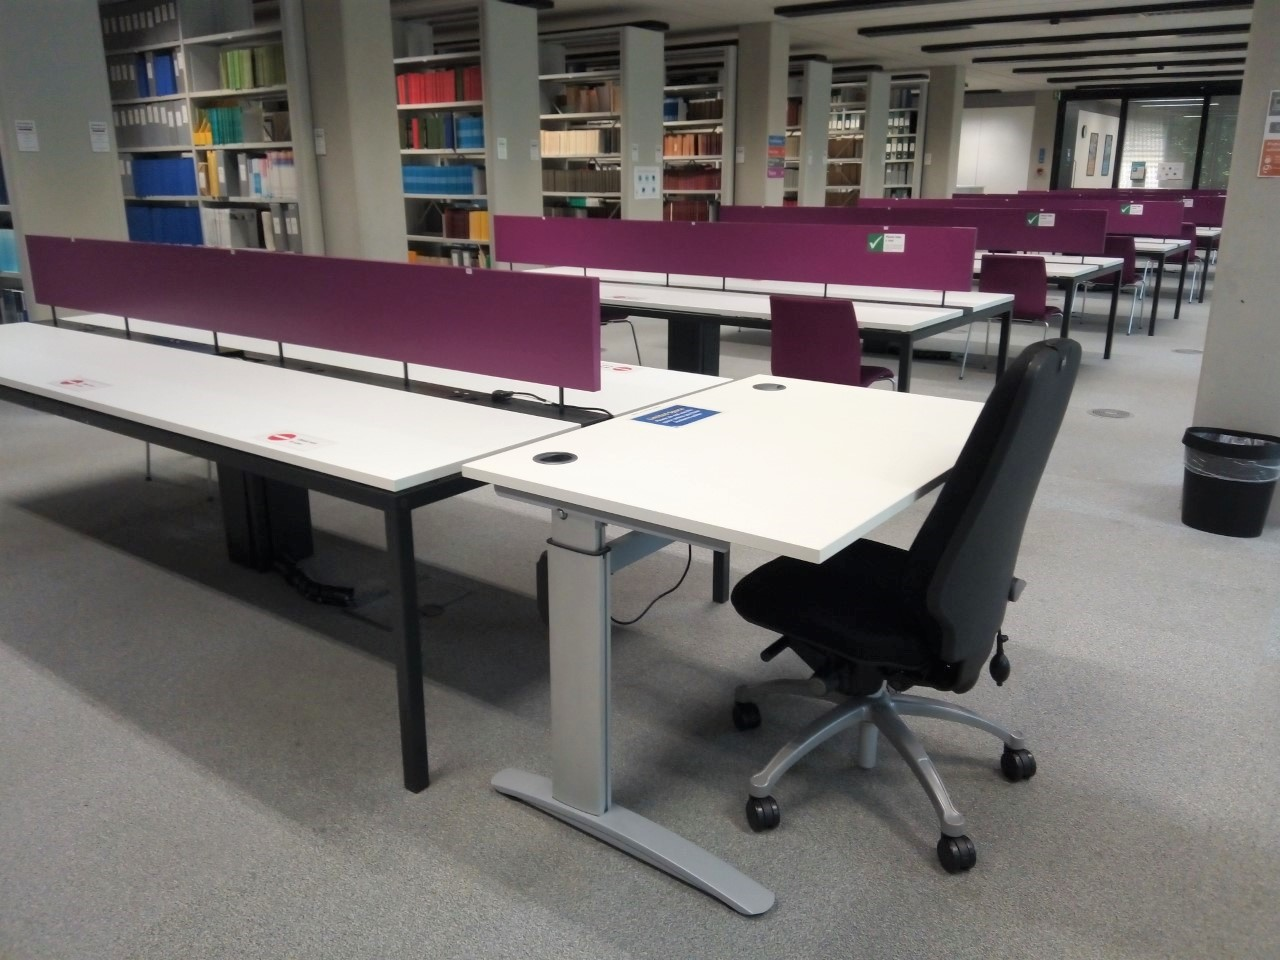 A photo of a height adjustable desk.